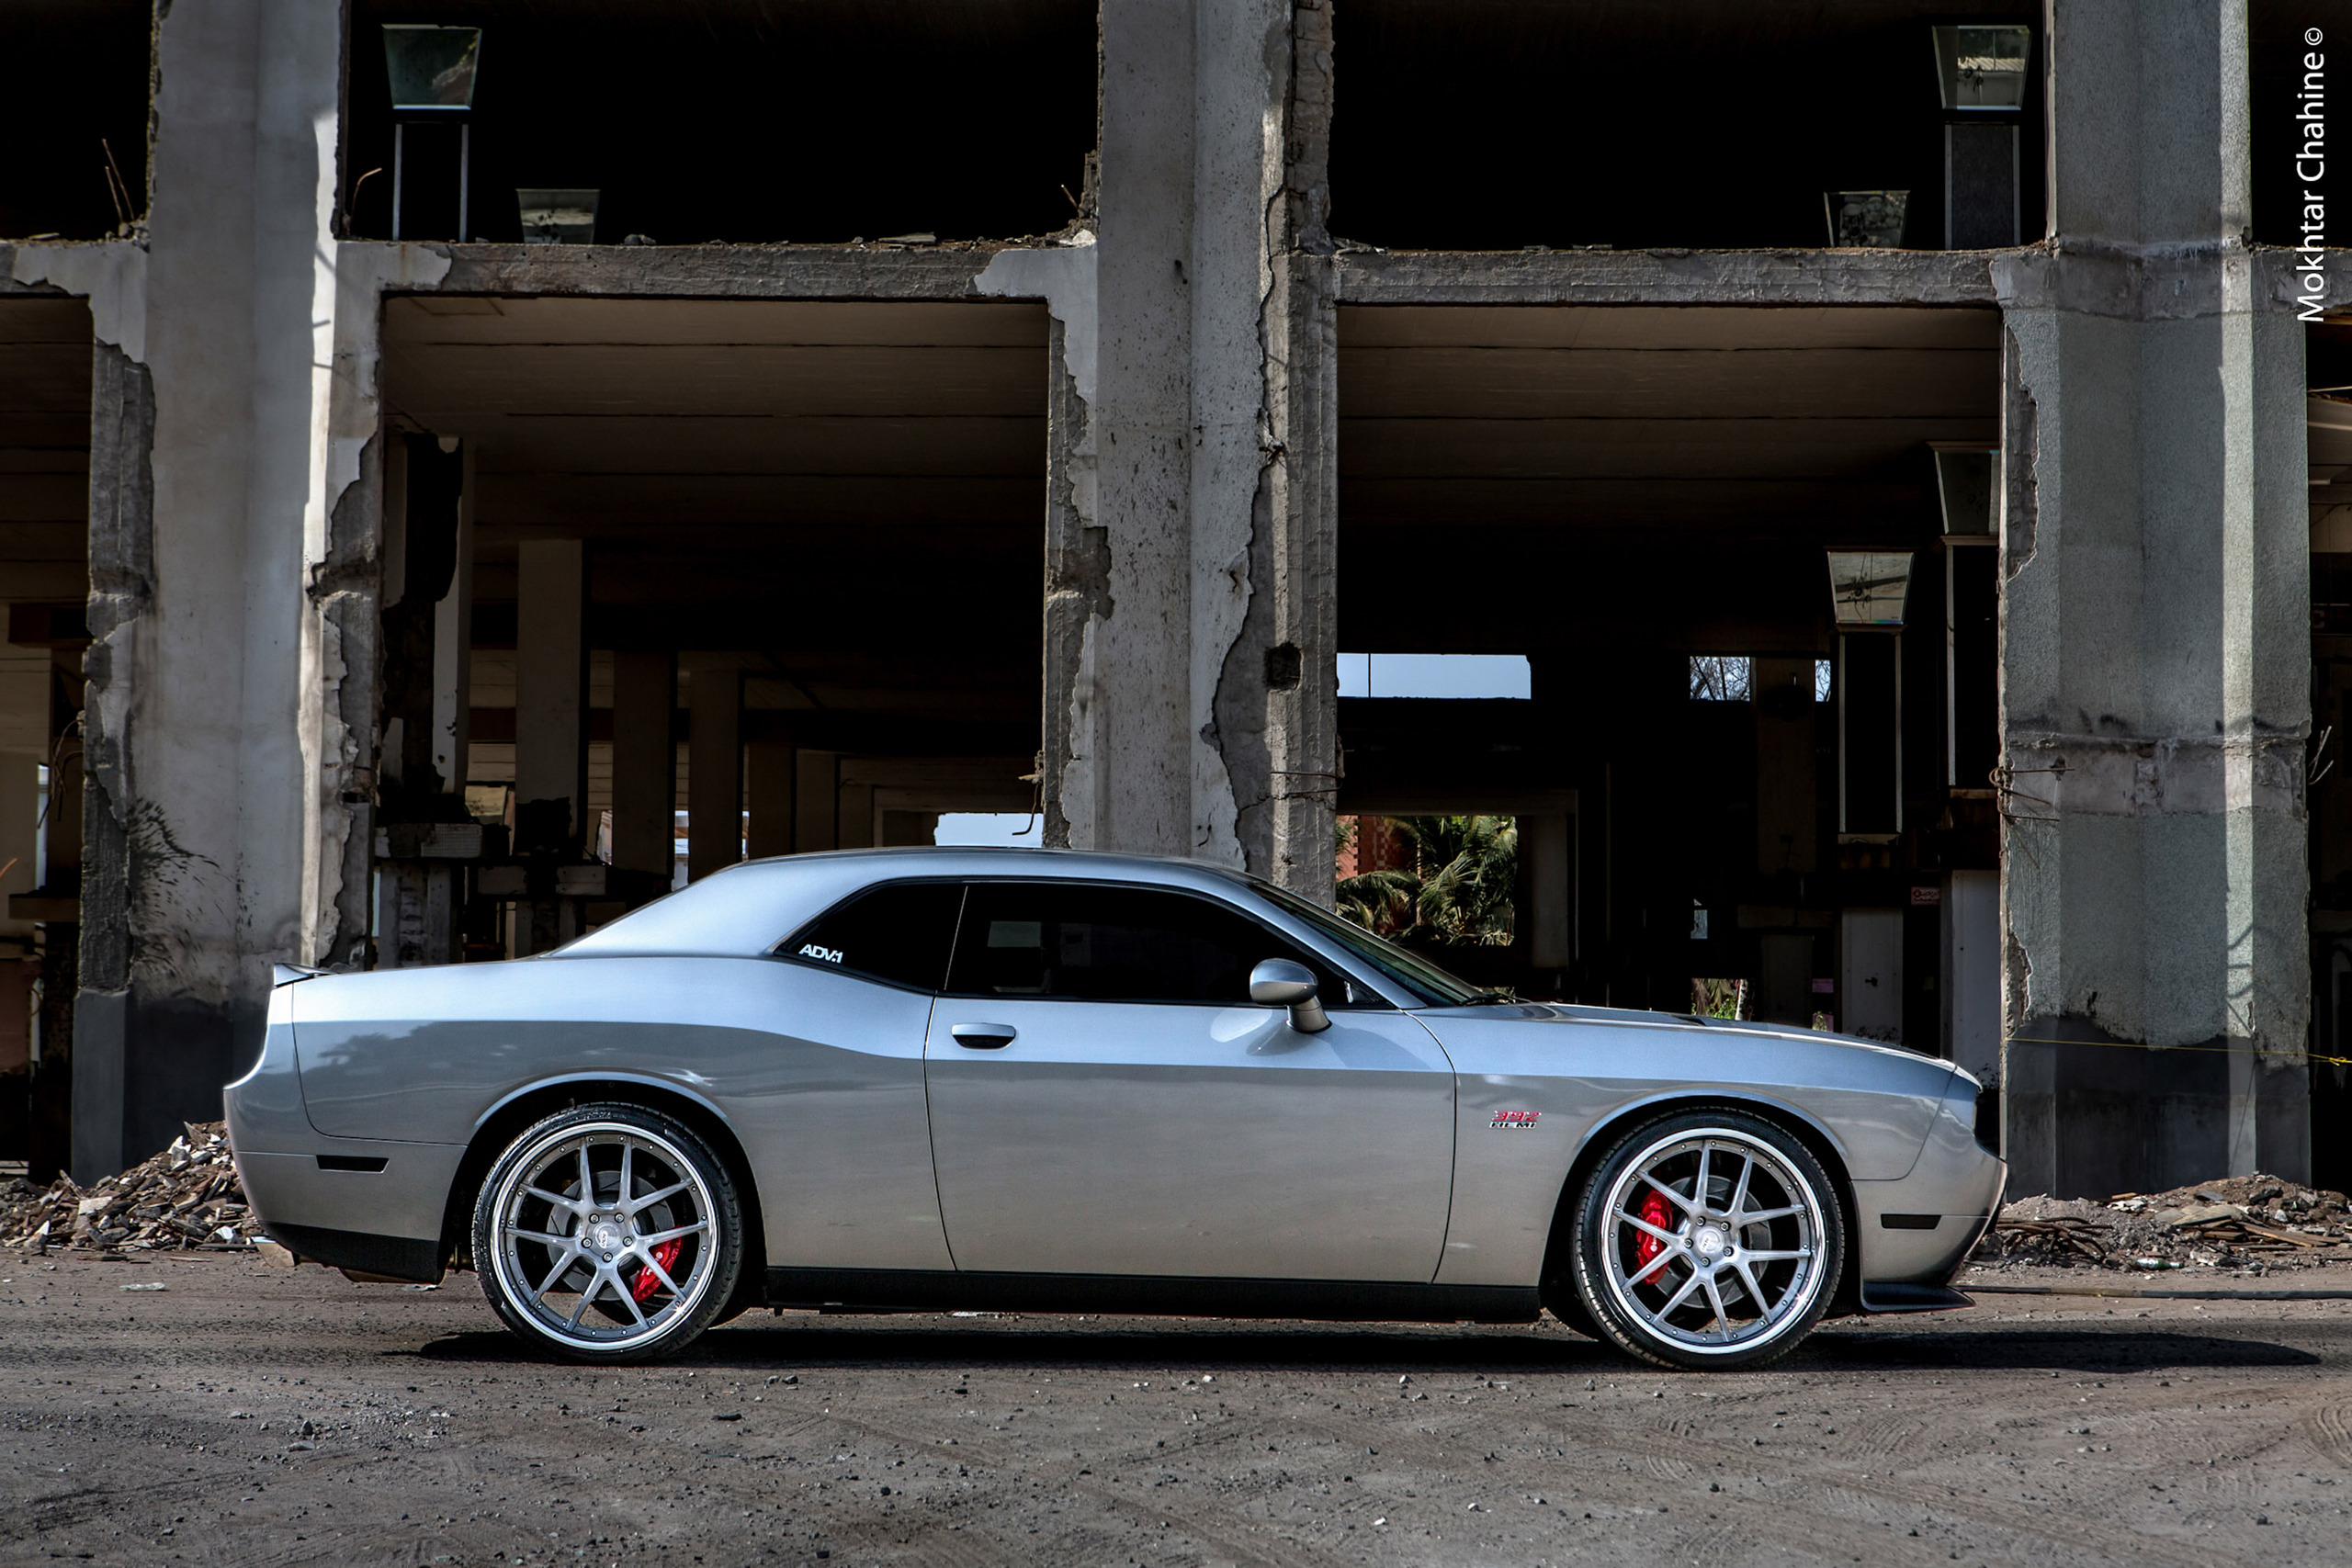 Sports Cars Images Dodge Challenger Srt8 Hd Wallpaper And